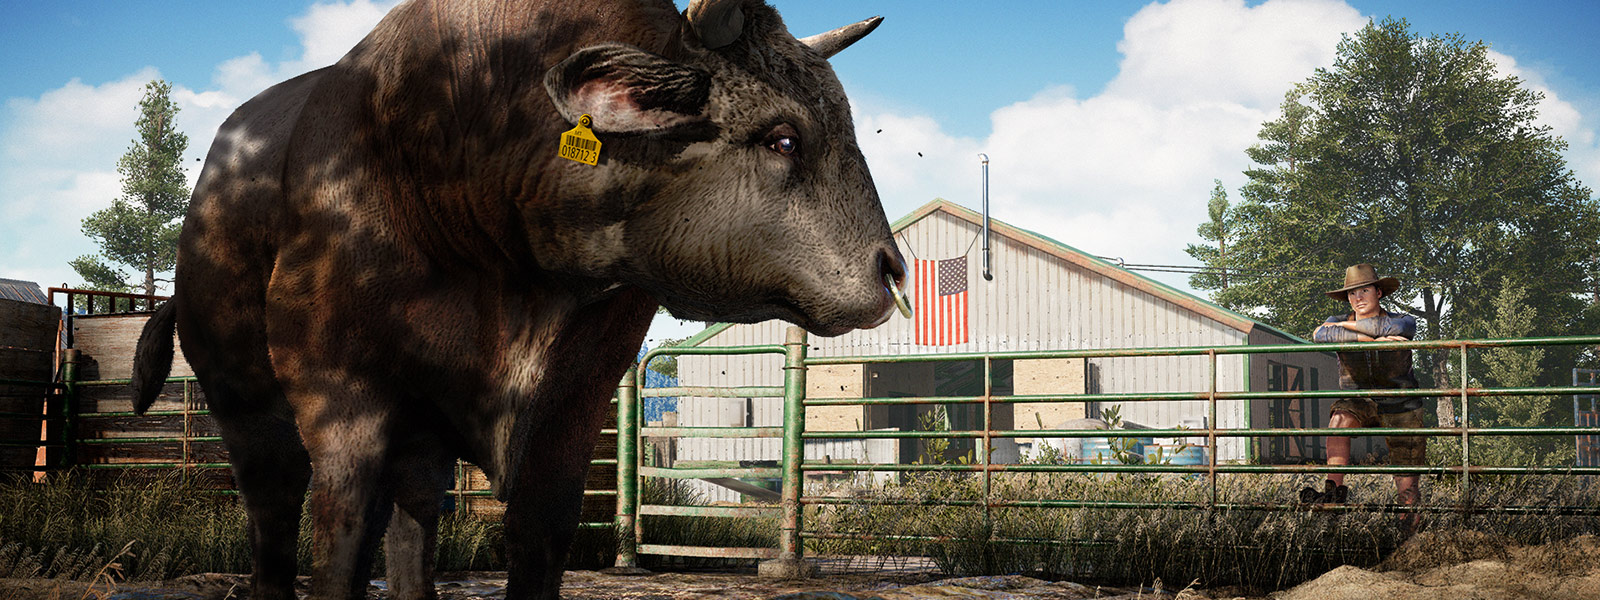 Taureau dans Far Cry 5